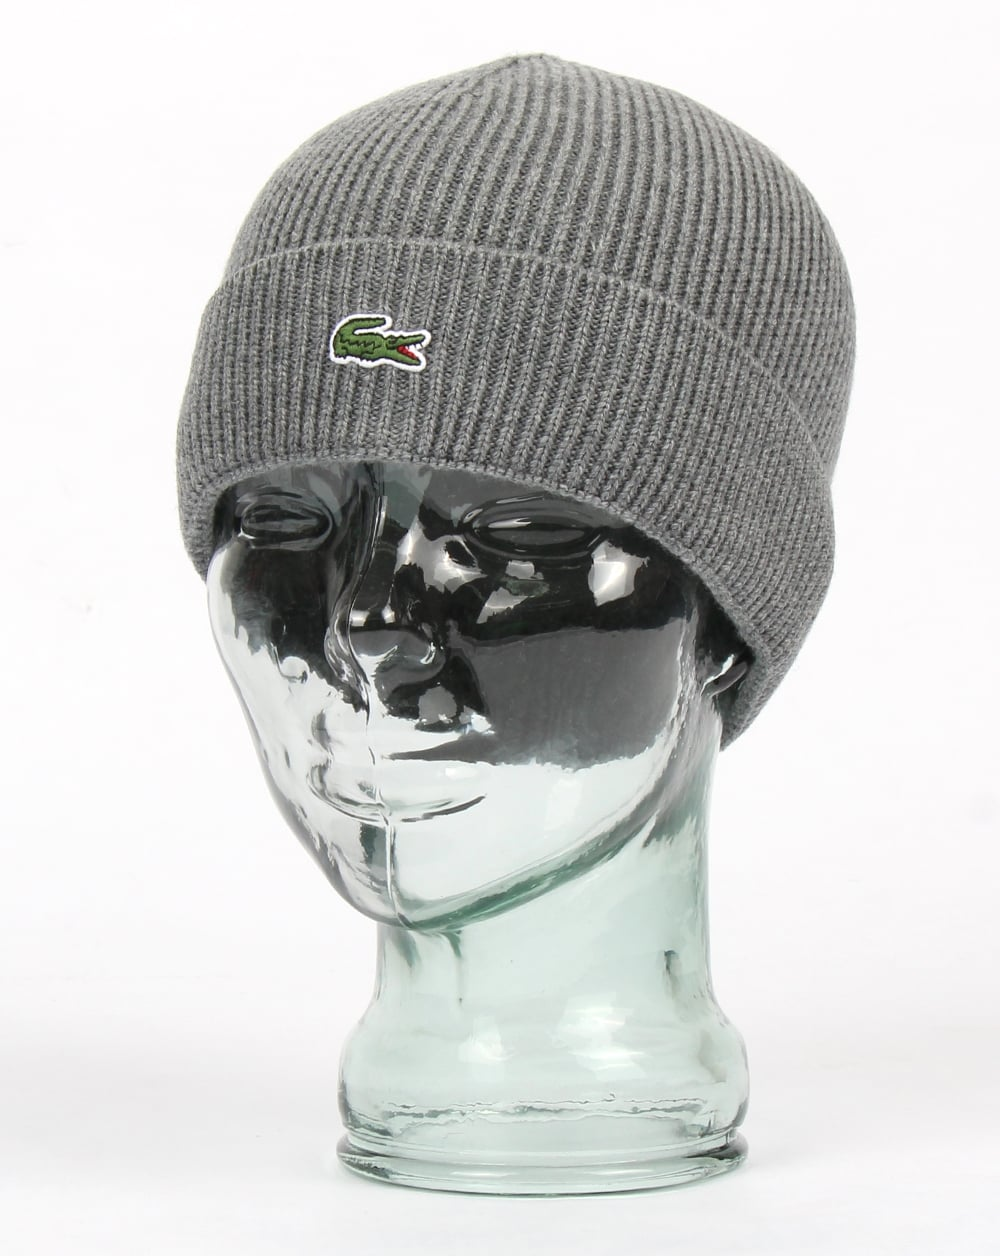 Lacoste Lacoste Turn Up Ribbed Wool Beanie Galaxite Chine f614c66dd8d